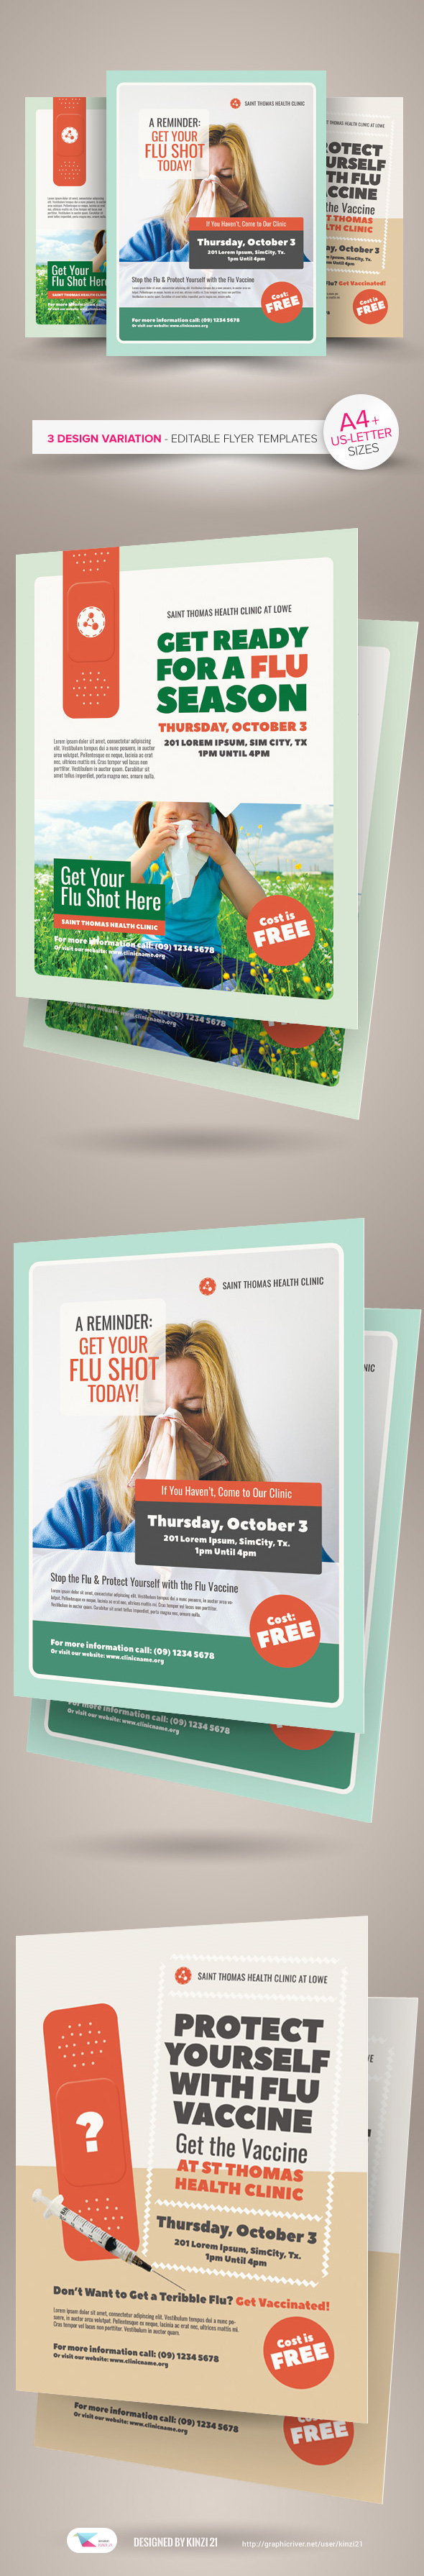 flu shot campaign flyer templates on behance flu shot campaign flyer templates are fully editable design templates created for on graphic river more info of the templates and how to get the